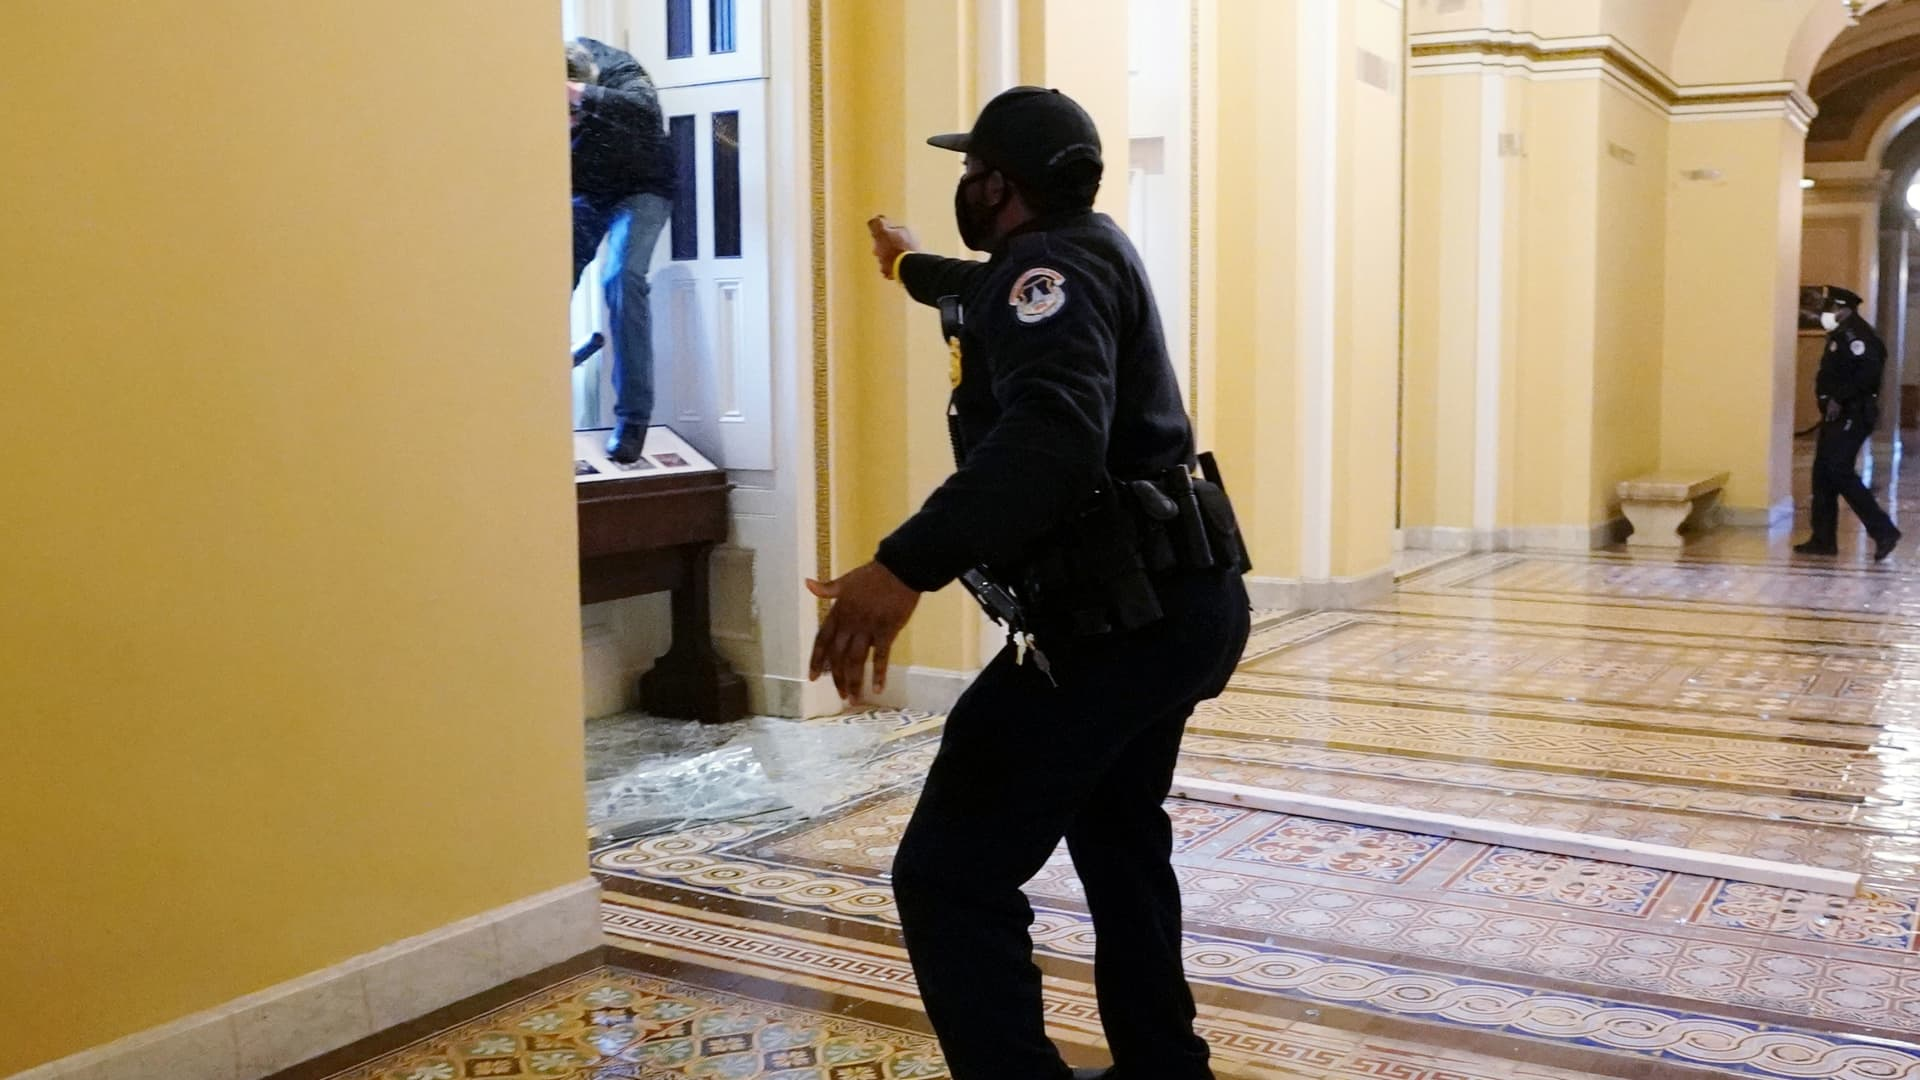 A U.S. Capitol police officer shoots pepper spray at a protestor attempting to enter the Capitol building during a joint session of Congress to certify the 2020 election results on Capitol Hill in Washington, January 6, 2021.